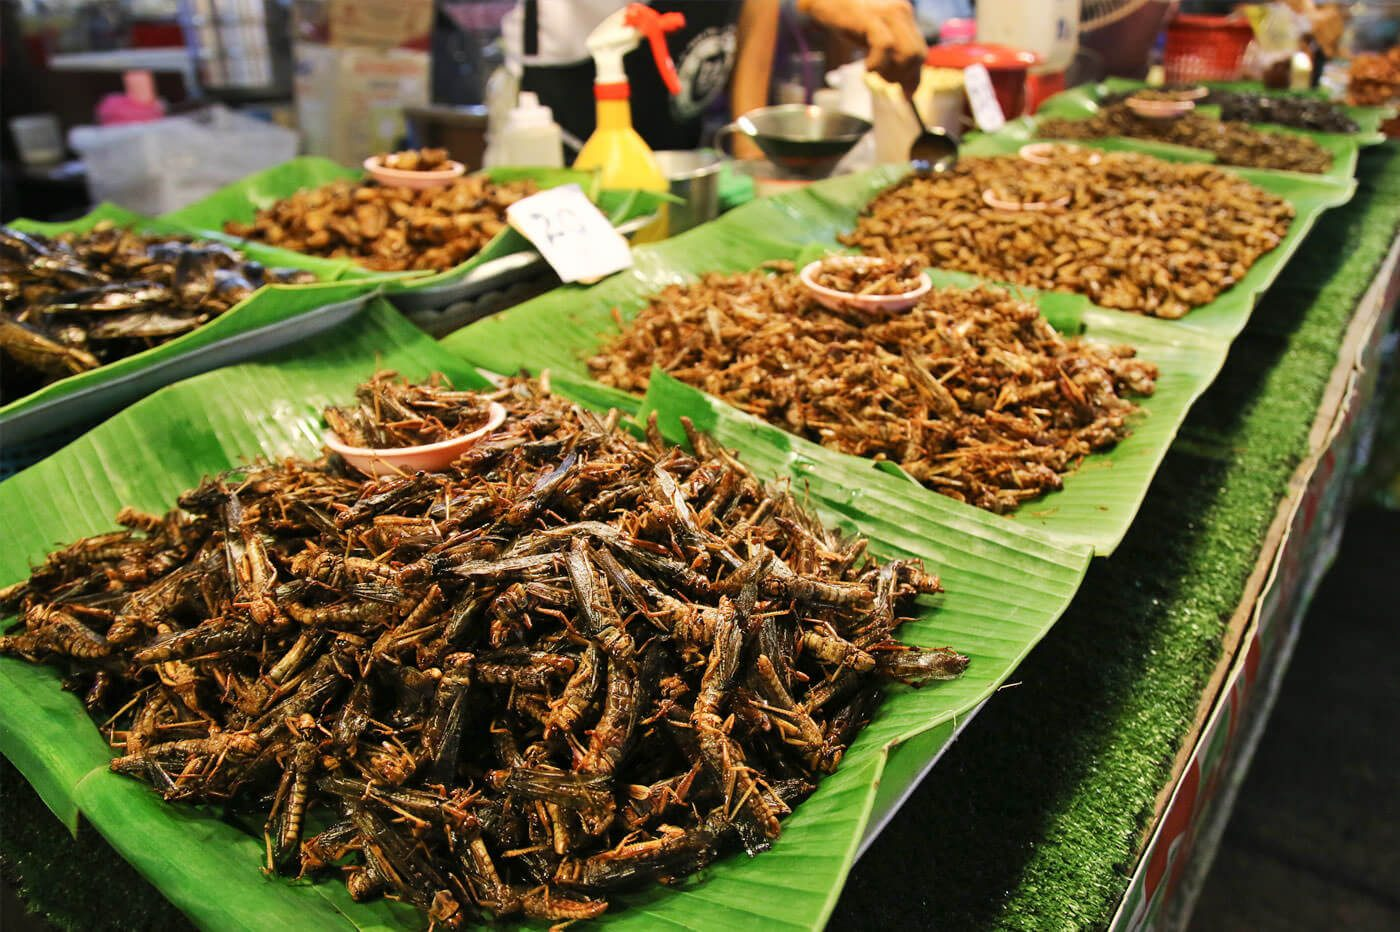 Insects, 4 italians out of 10 are ready to eat them